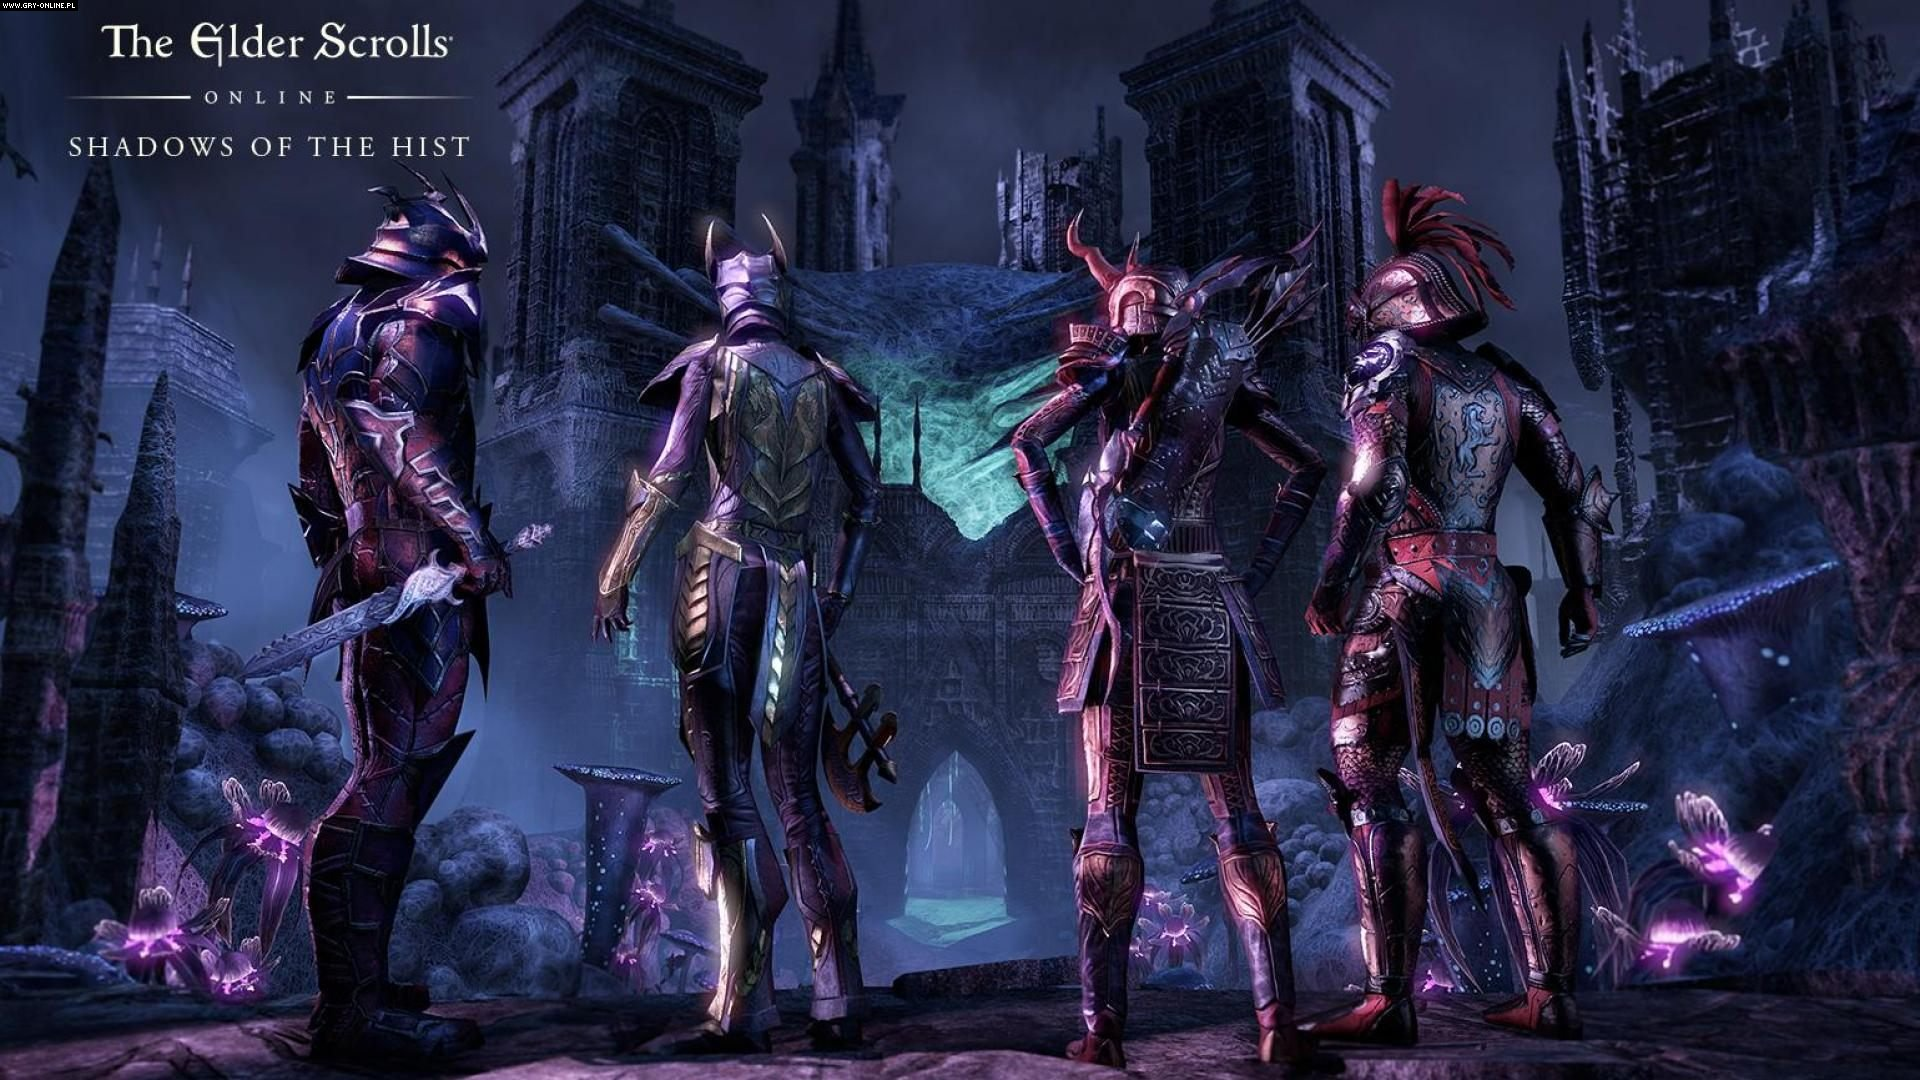 The Elder Scrolls Online: Shadows of the Hist PC, XONE, PS4 Gry Screen 3/3, ZeniMax Online Studios, Bethesda Softworks